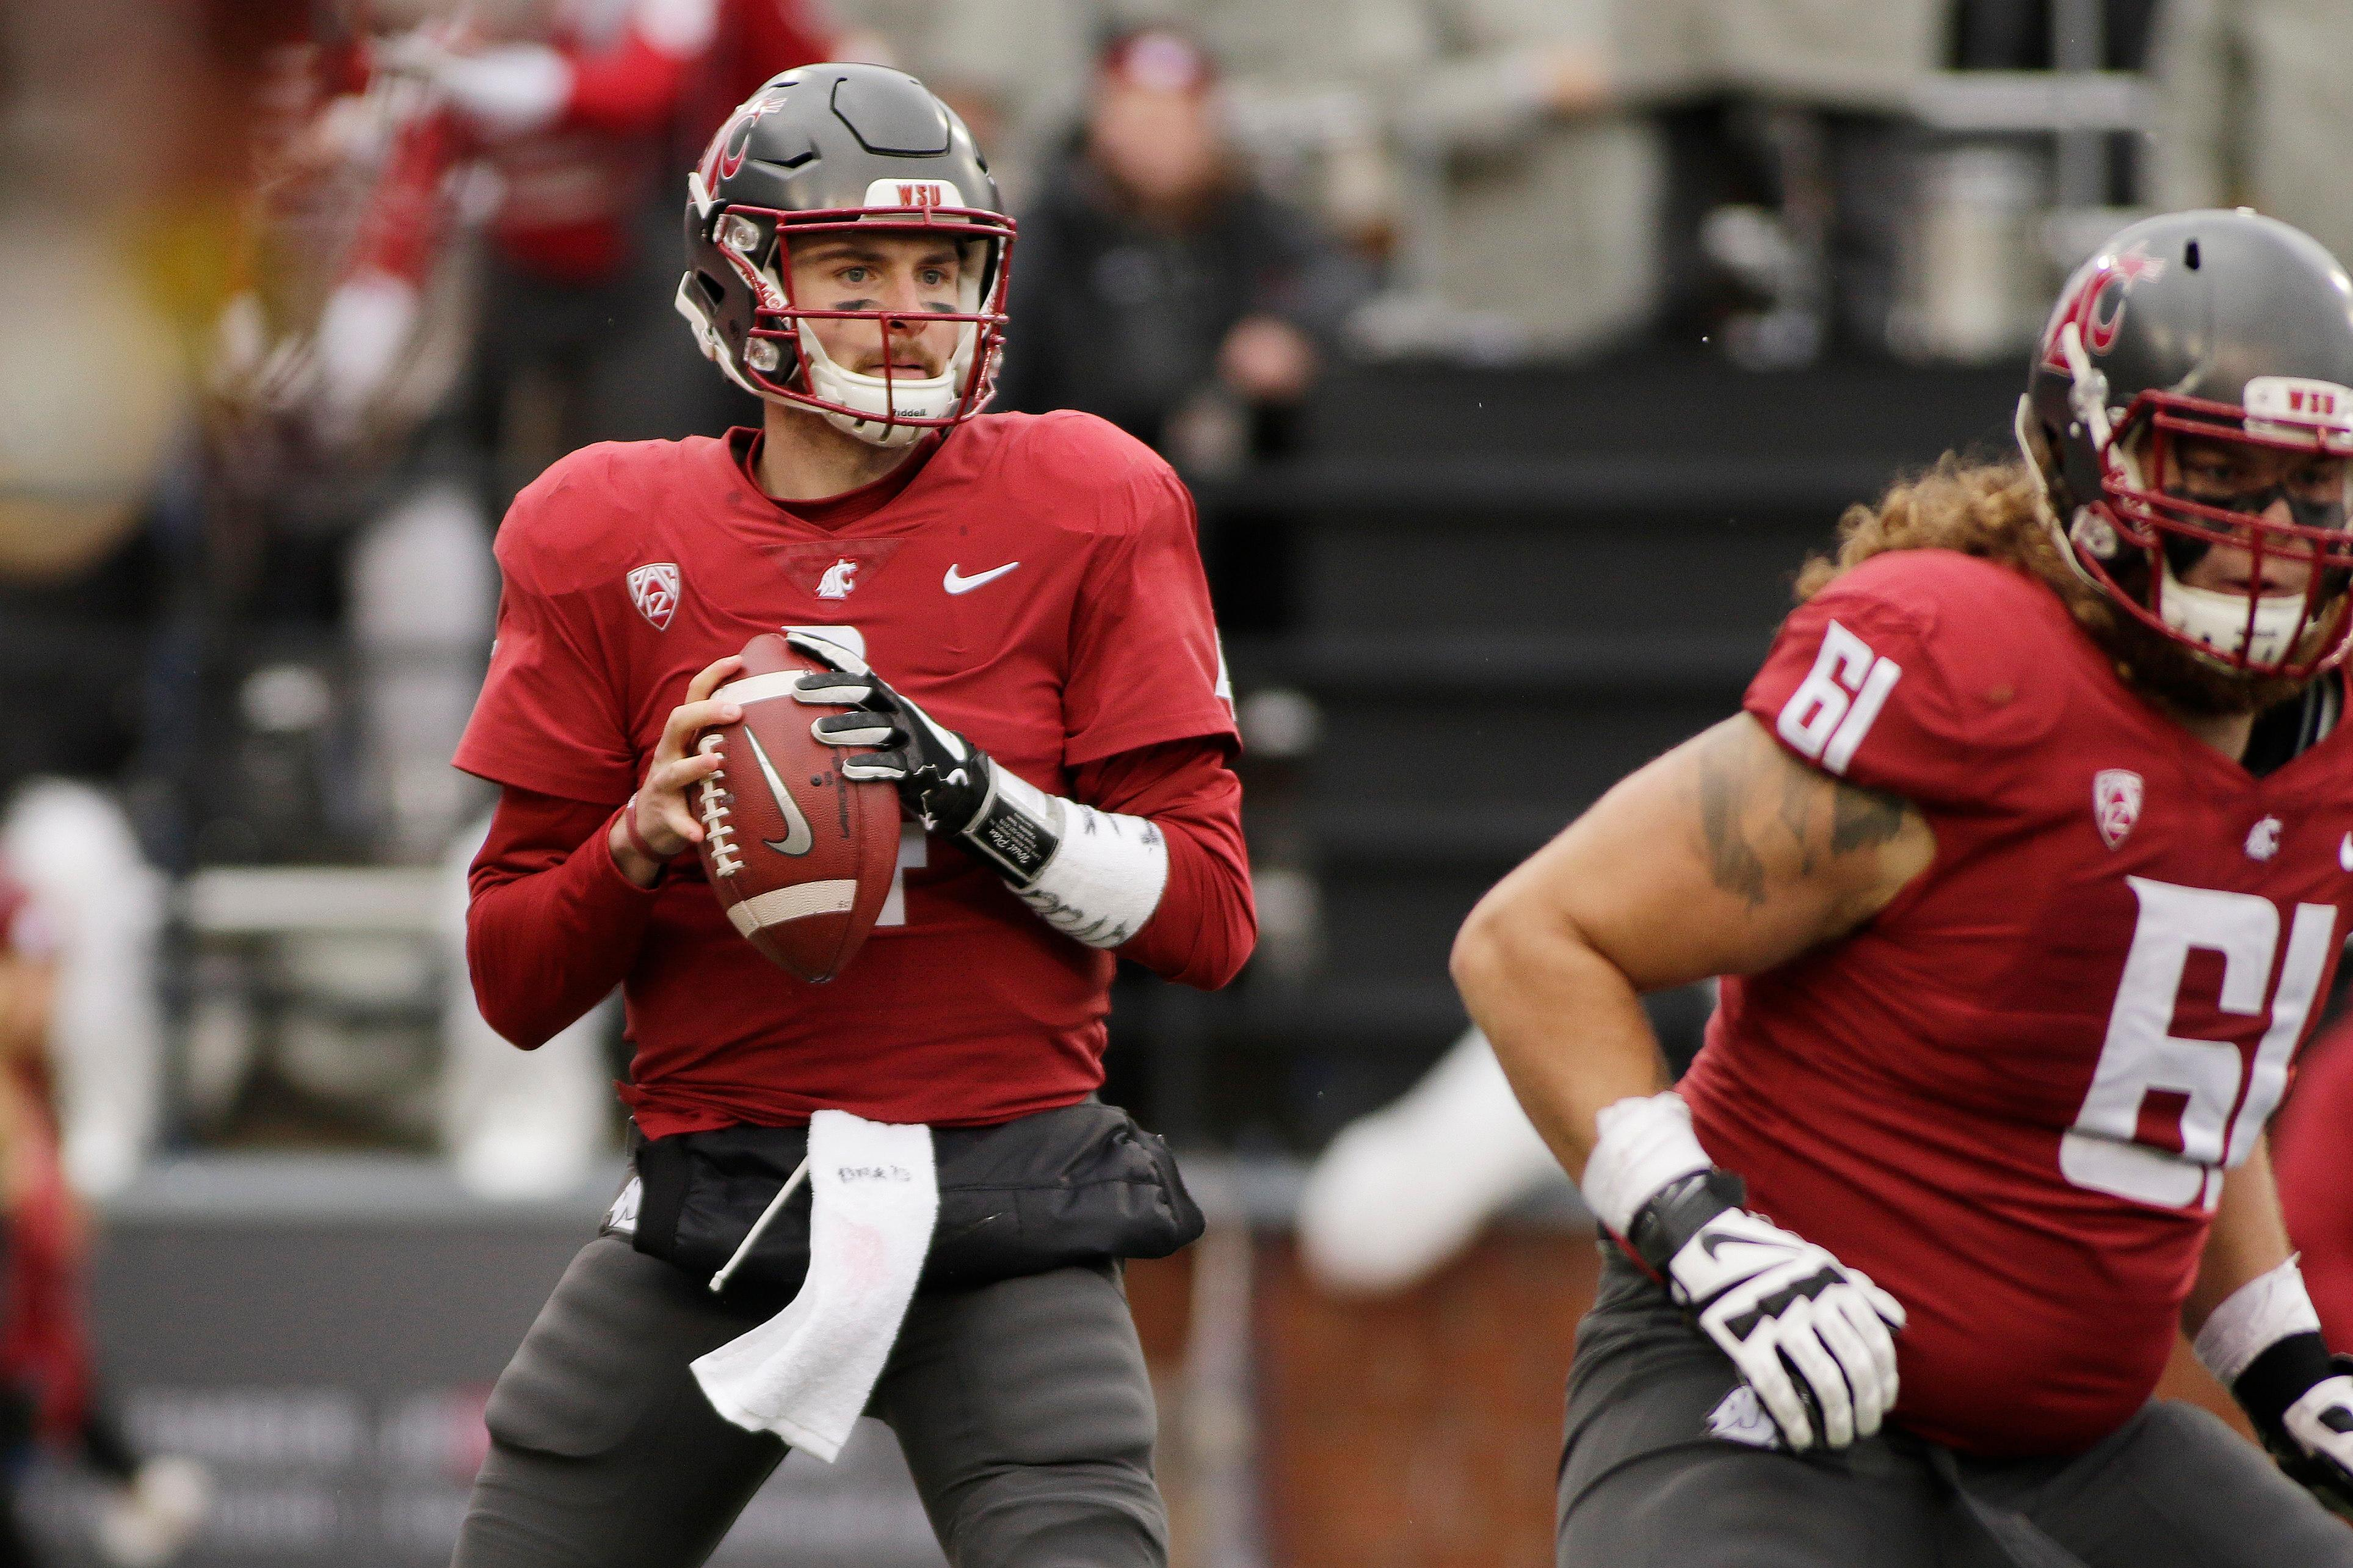 FILE - In this Saturday, Nov. 4, 2017 file photo, Washington State quarterback Luke Falk (4) looks for a receiver during the first half of an NCAA college football game against Stanford in Pullman, Wash. (AP Photo/Young Kwak, File)<p></p>